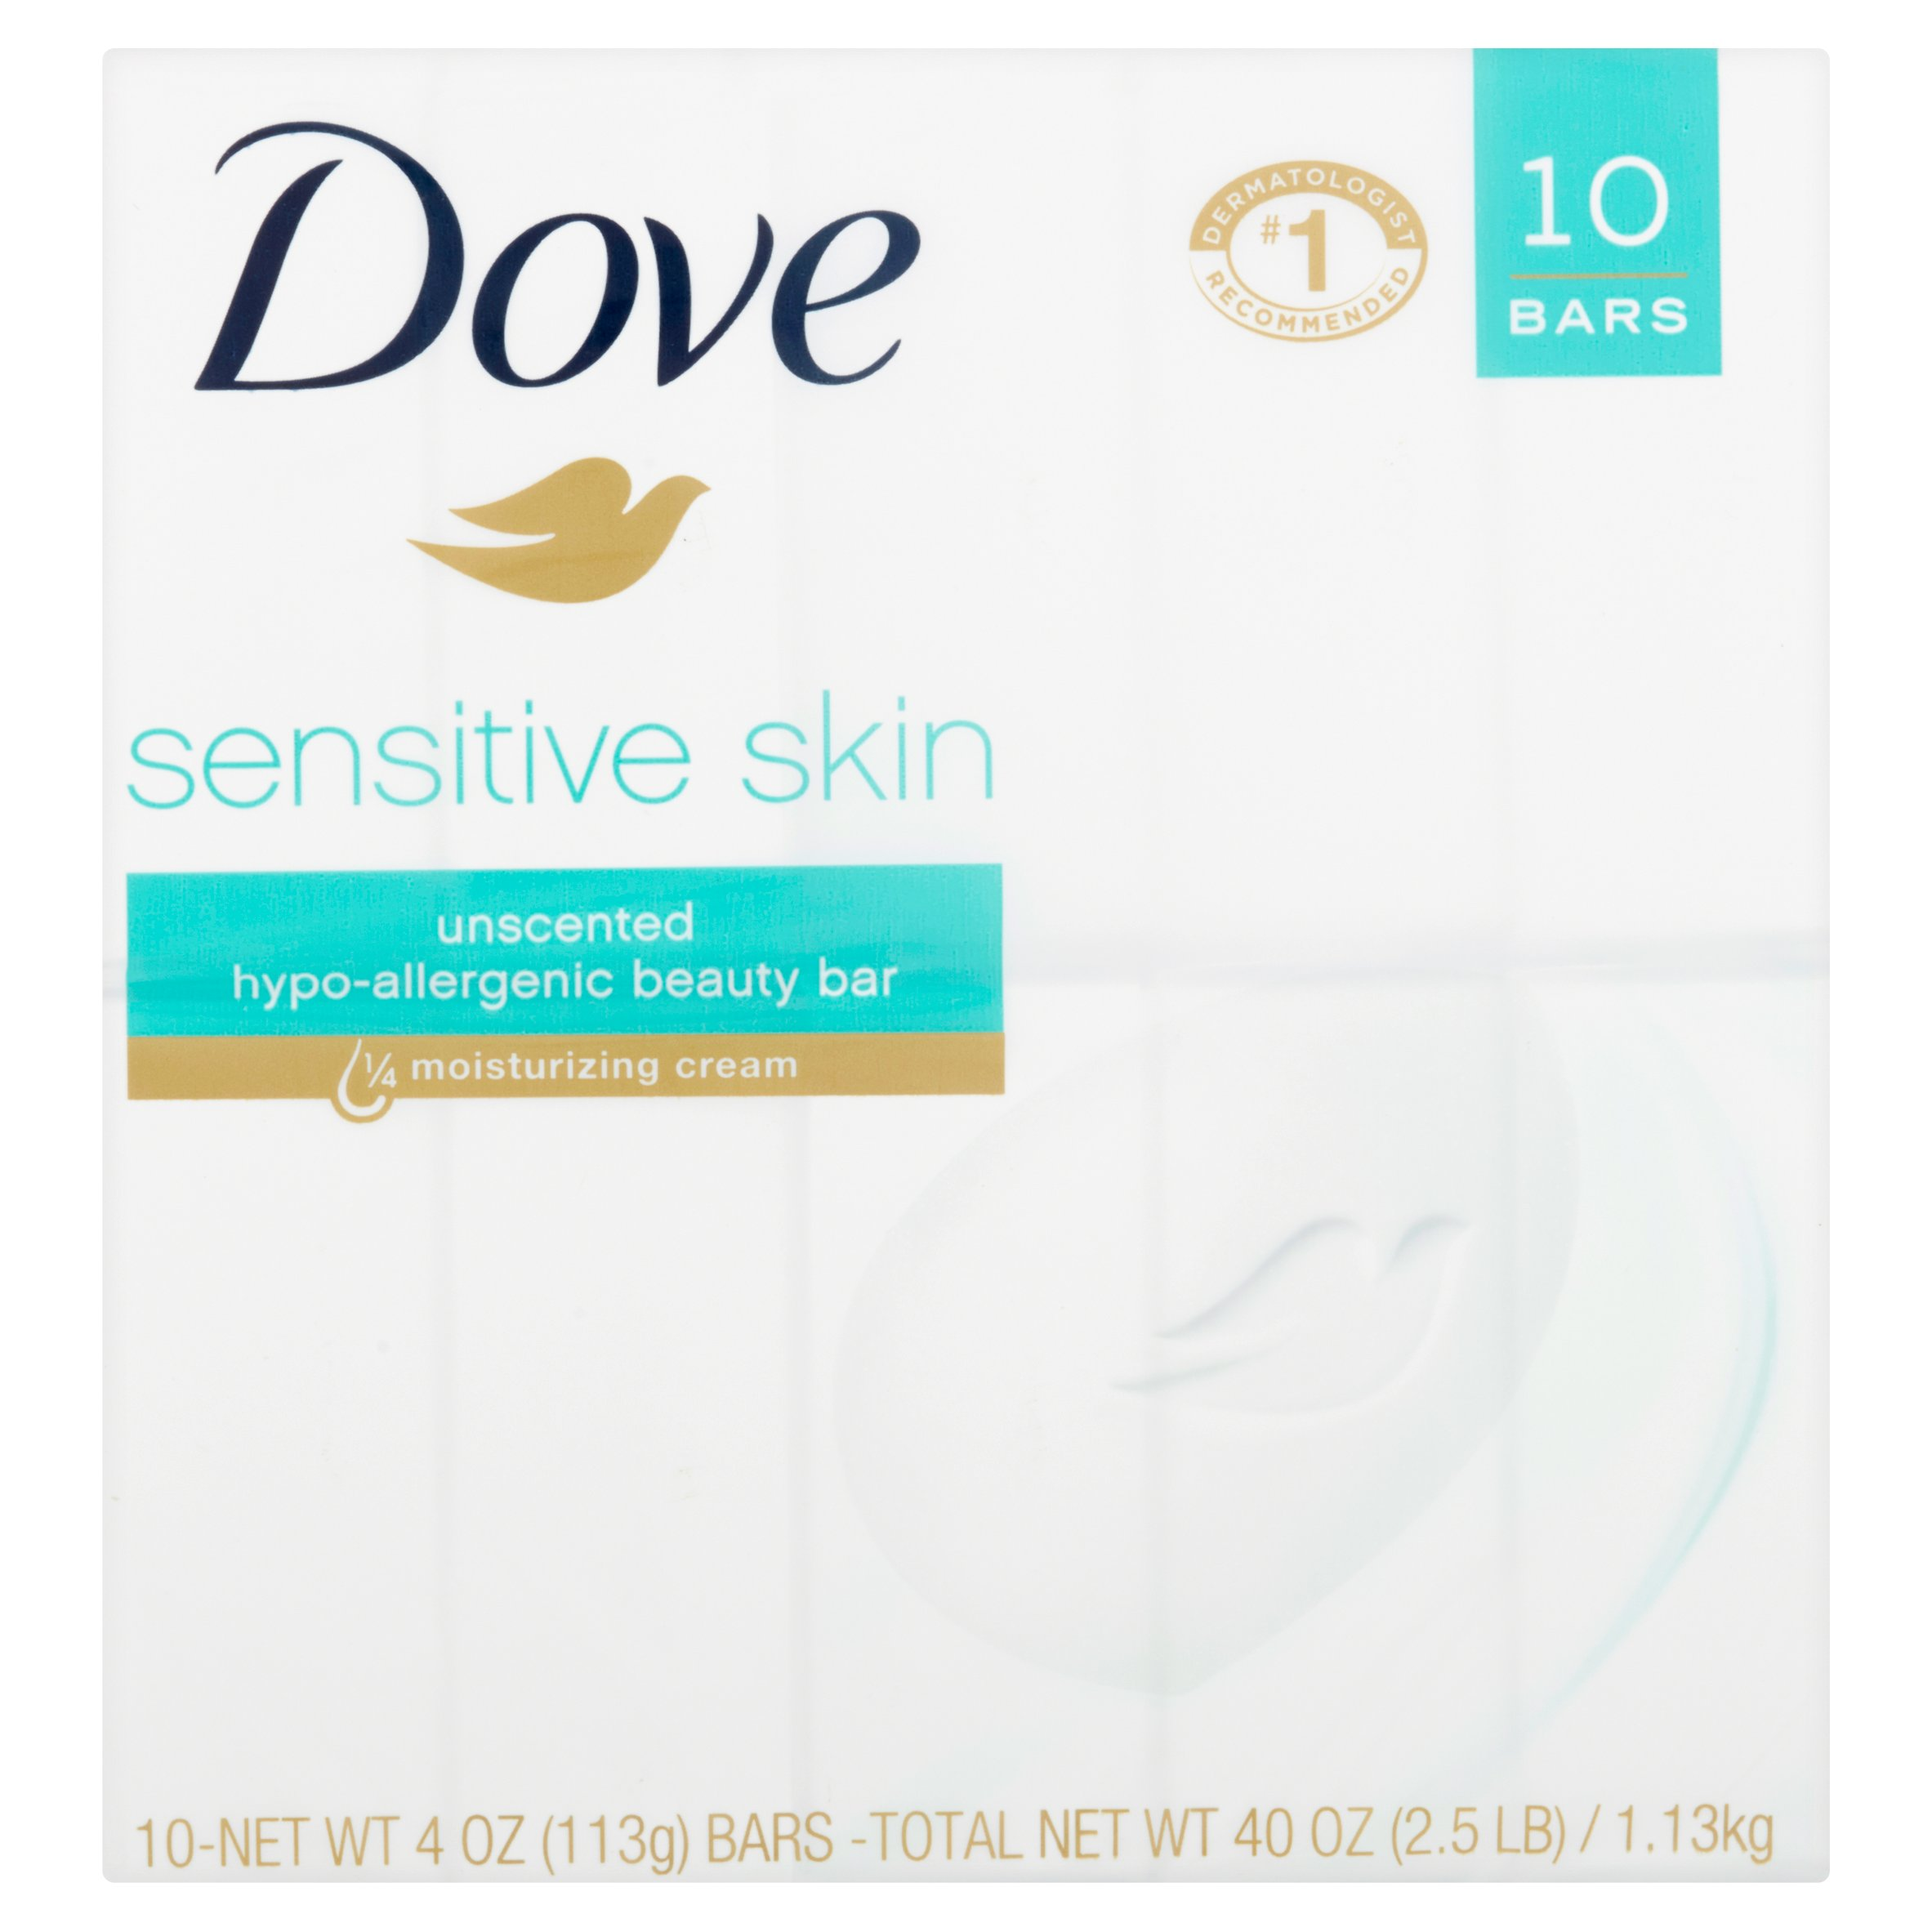 Dove Sensitive Skin Unscented Hypo-Allergenic Beauty Bar, 4 oz, 10 count - Walmart.com